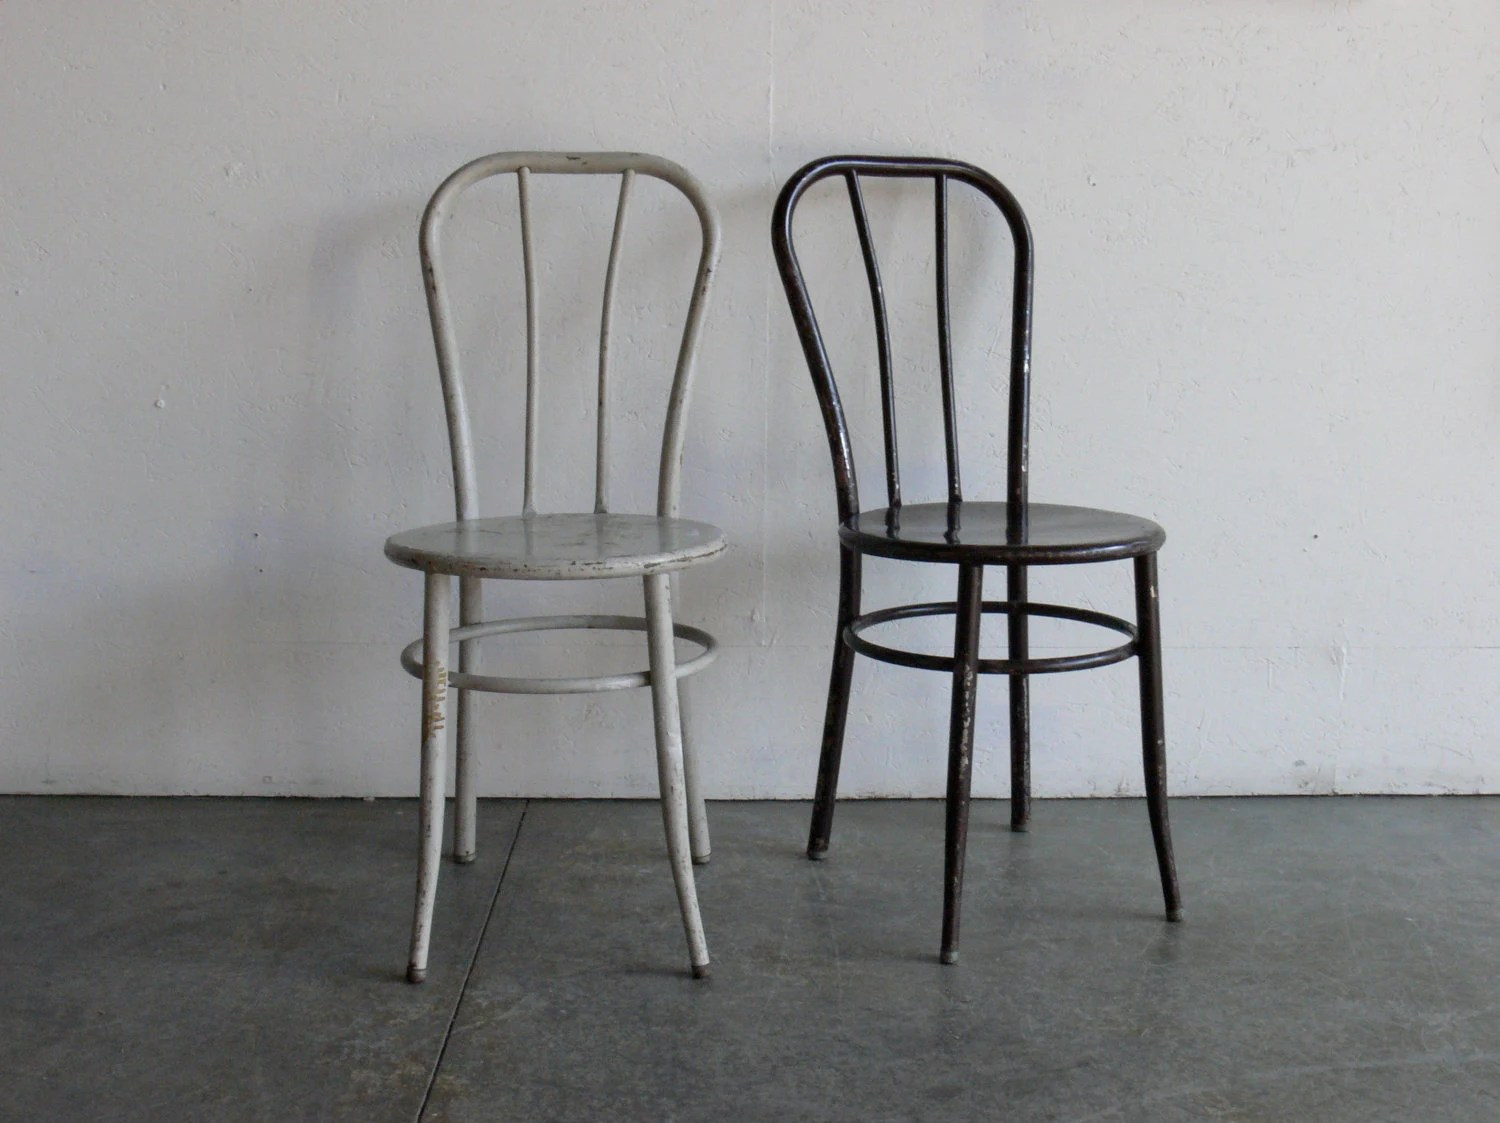 Metal Chairs Vintage Industrial Metal Cafe Chairs Set Of 2